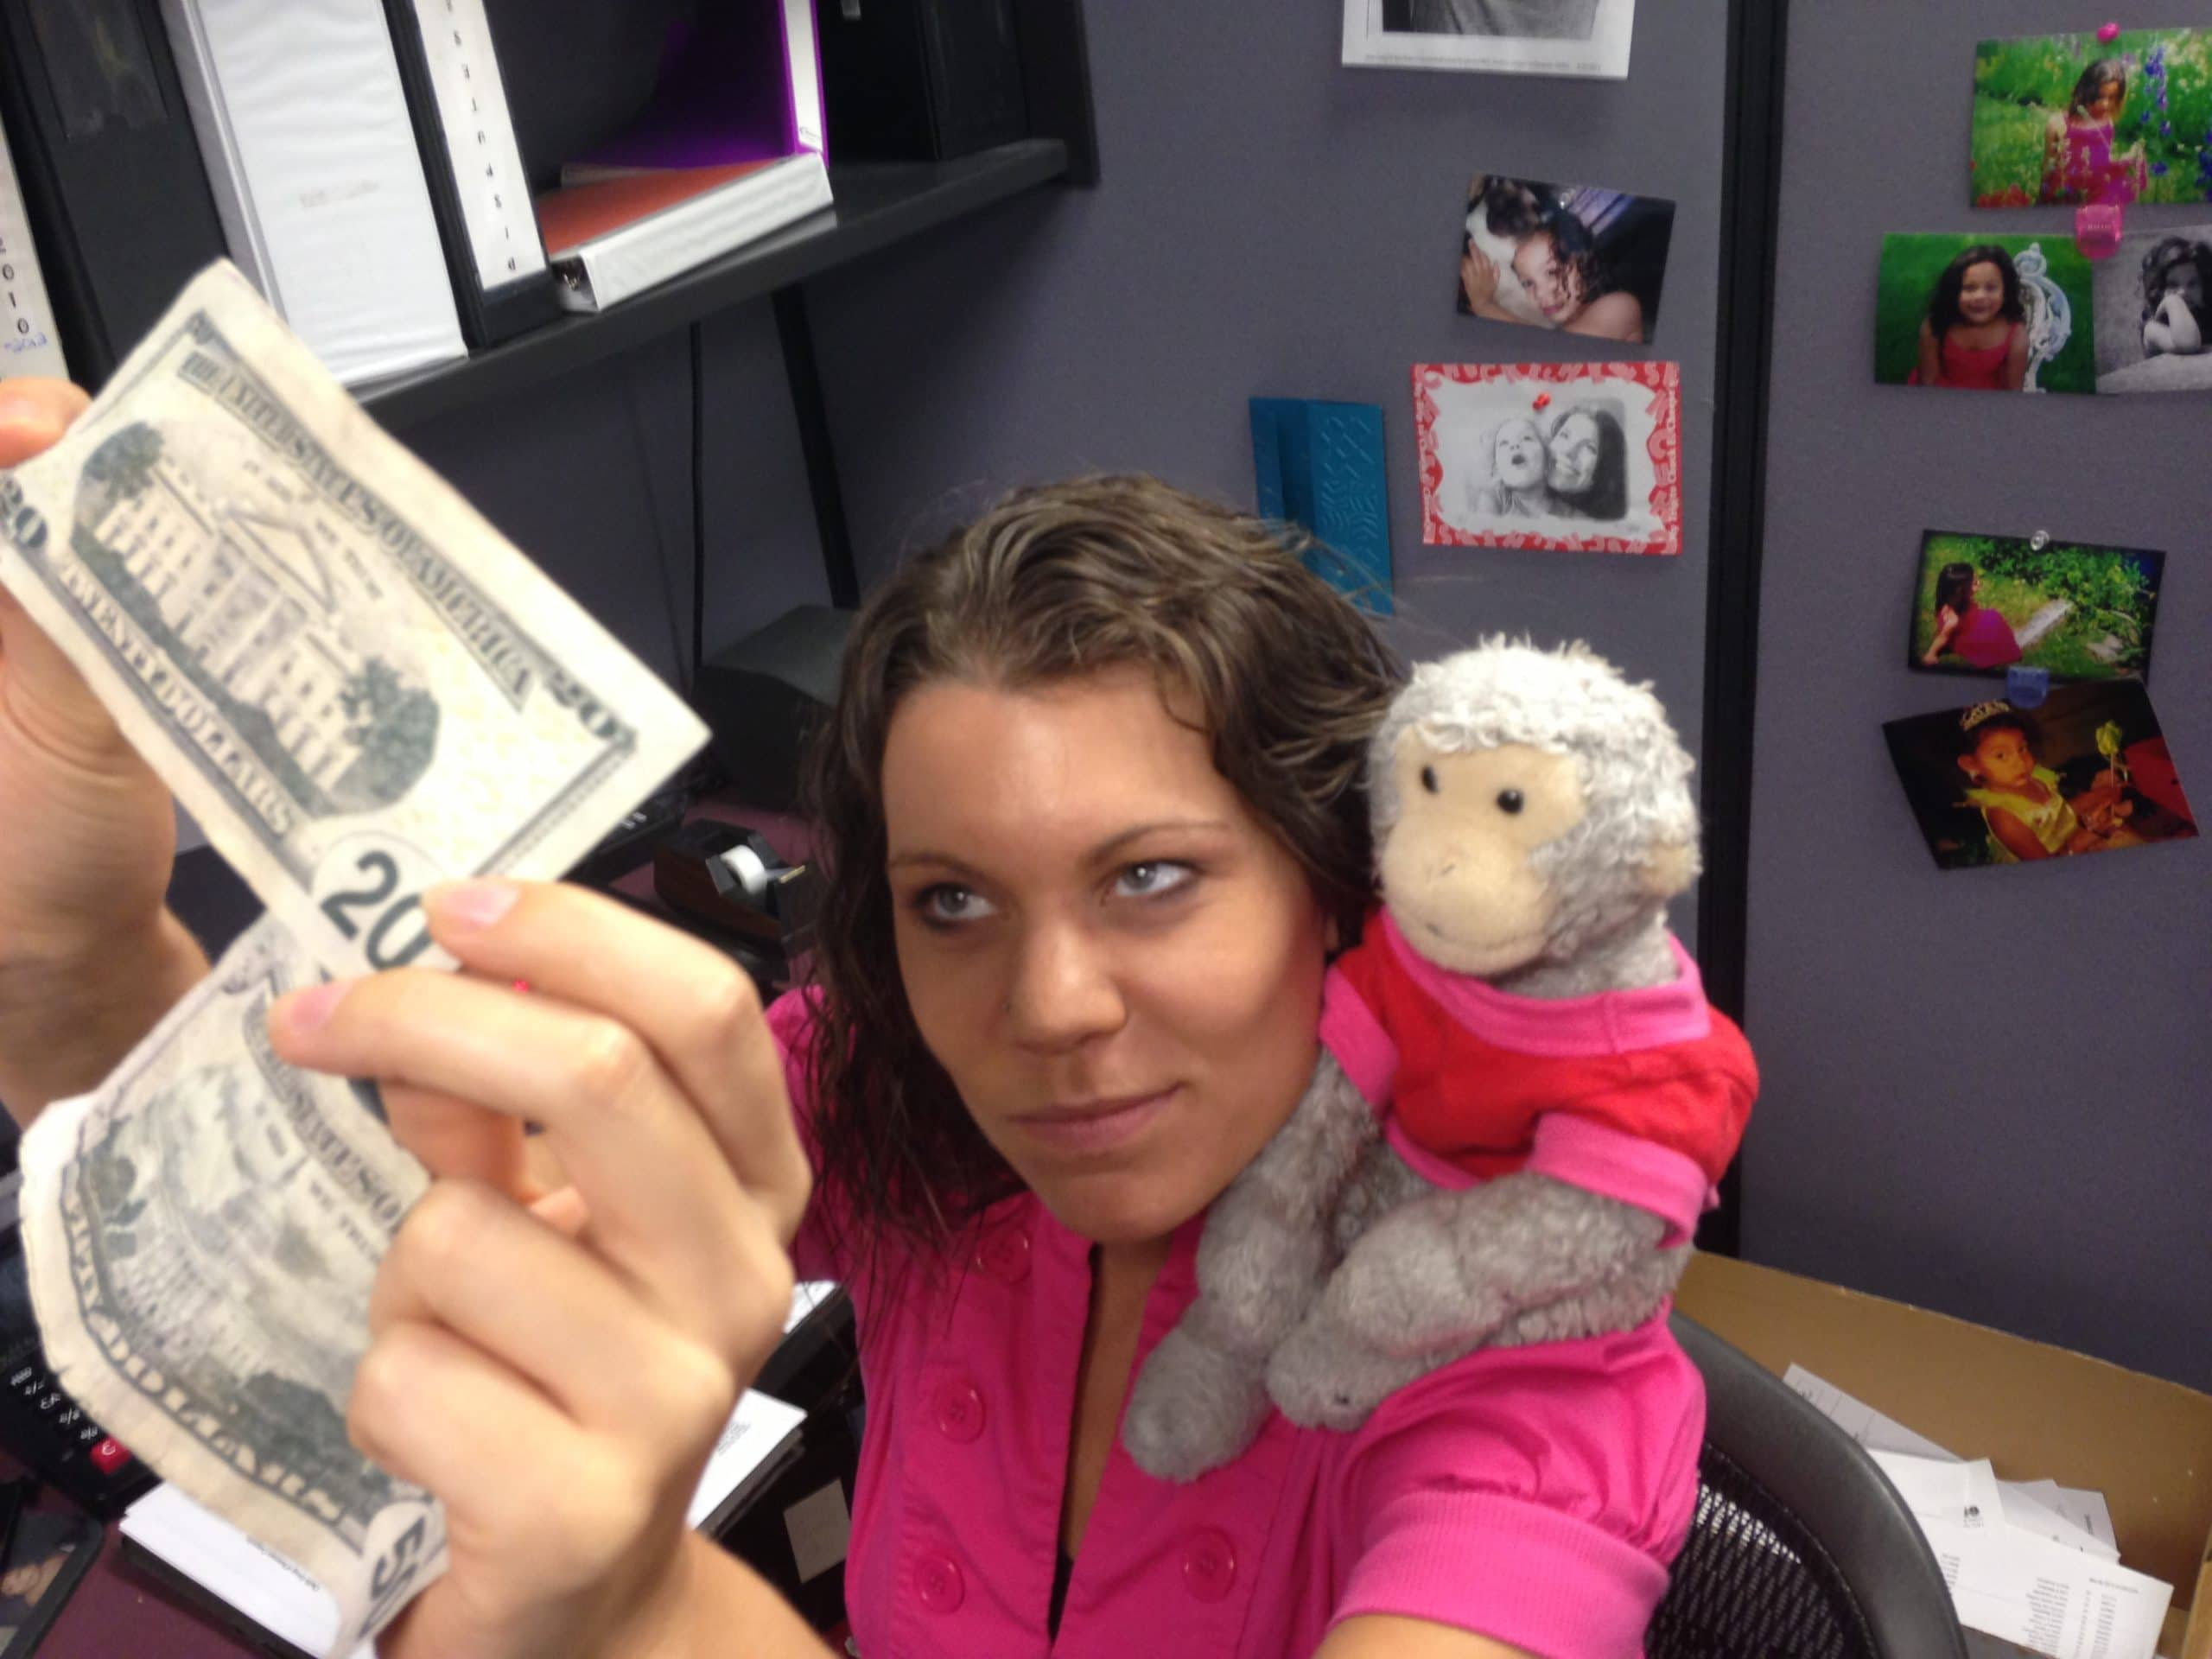 Our fraud specialist teaching the Monkey all about fake bills.